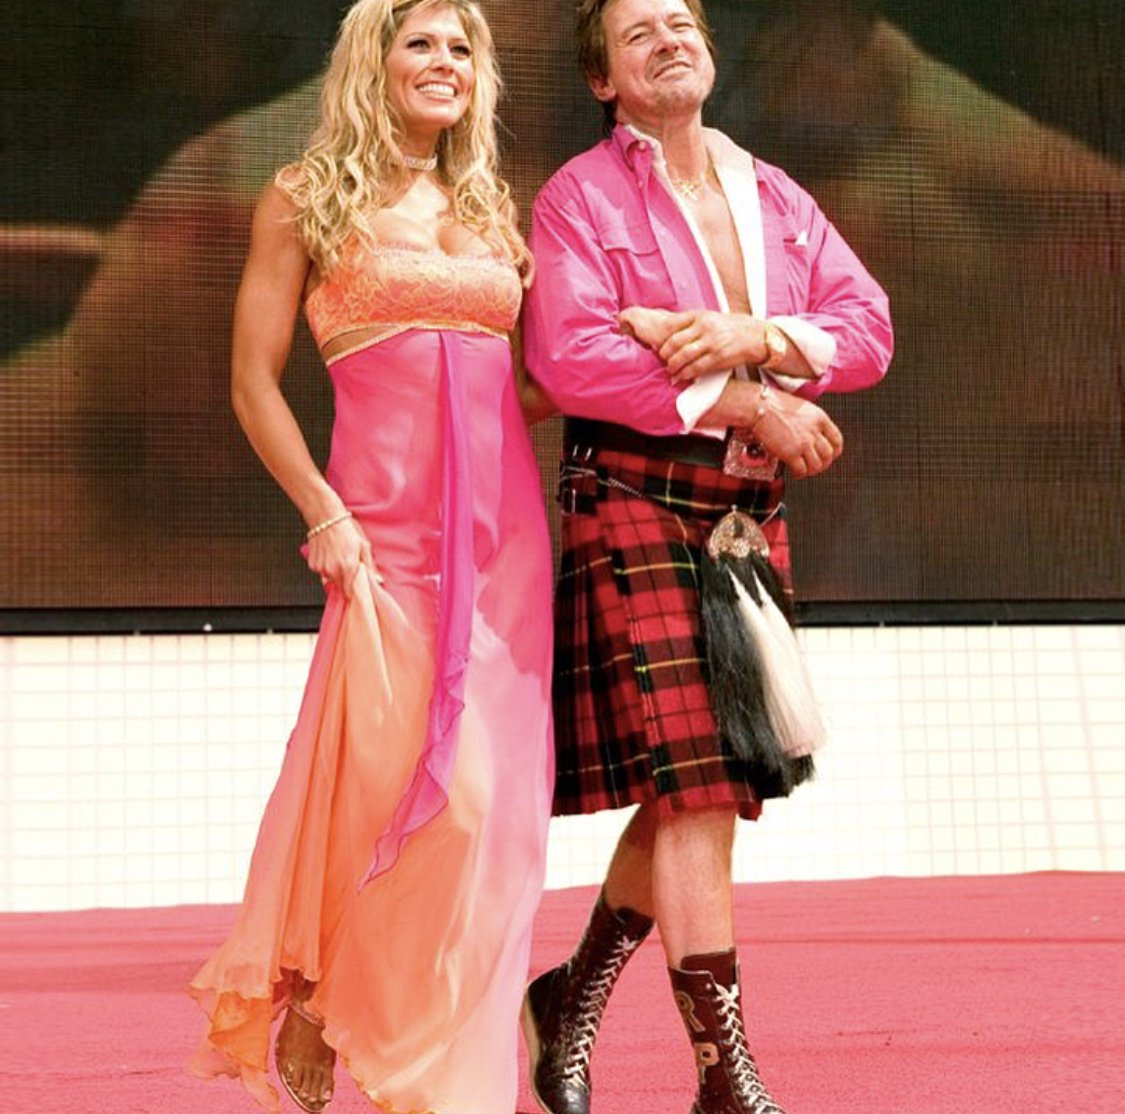 #TBT to Roddy Piper's Hall of fame induction. What an honor to walk him out at Wrestlemania! Such a great guy. ???????? https://t.co/QoD3HESeeo